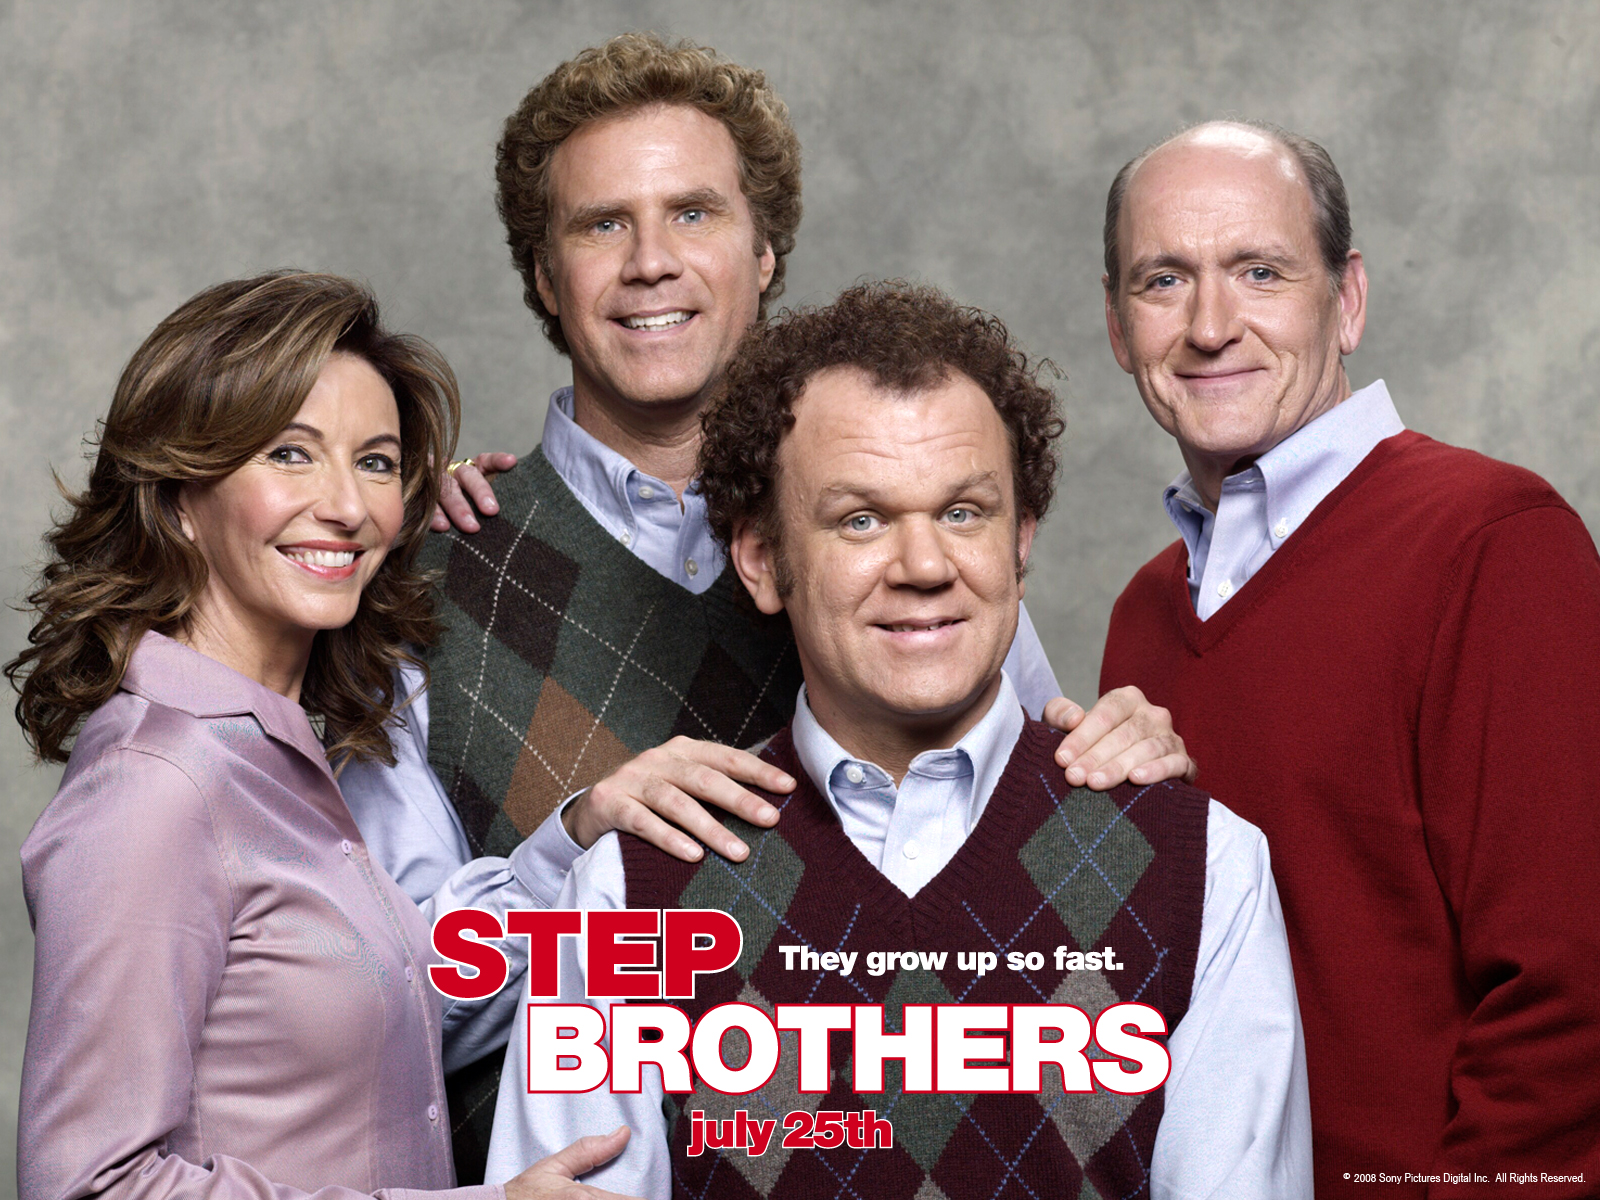 Step Brothers 2 (2017) Cast, Plot, Rumors, and release ...